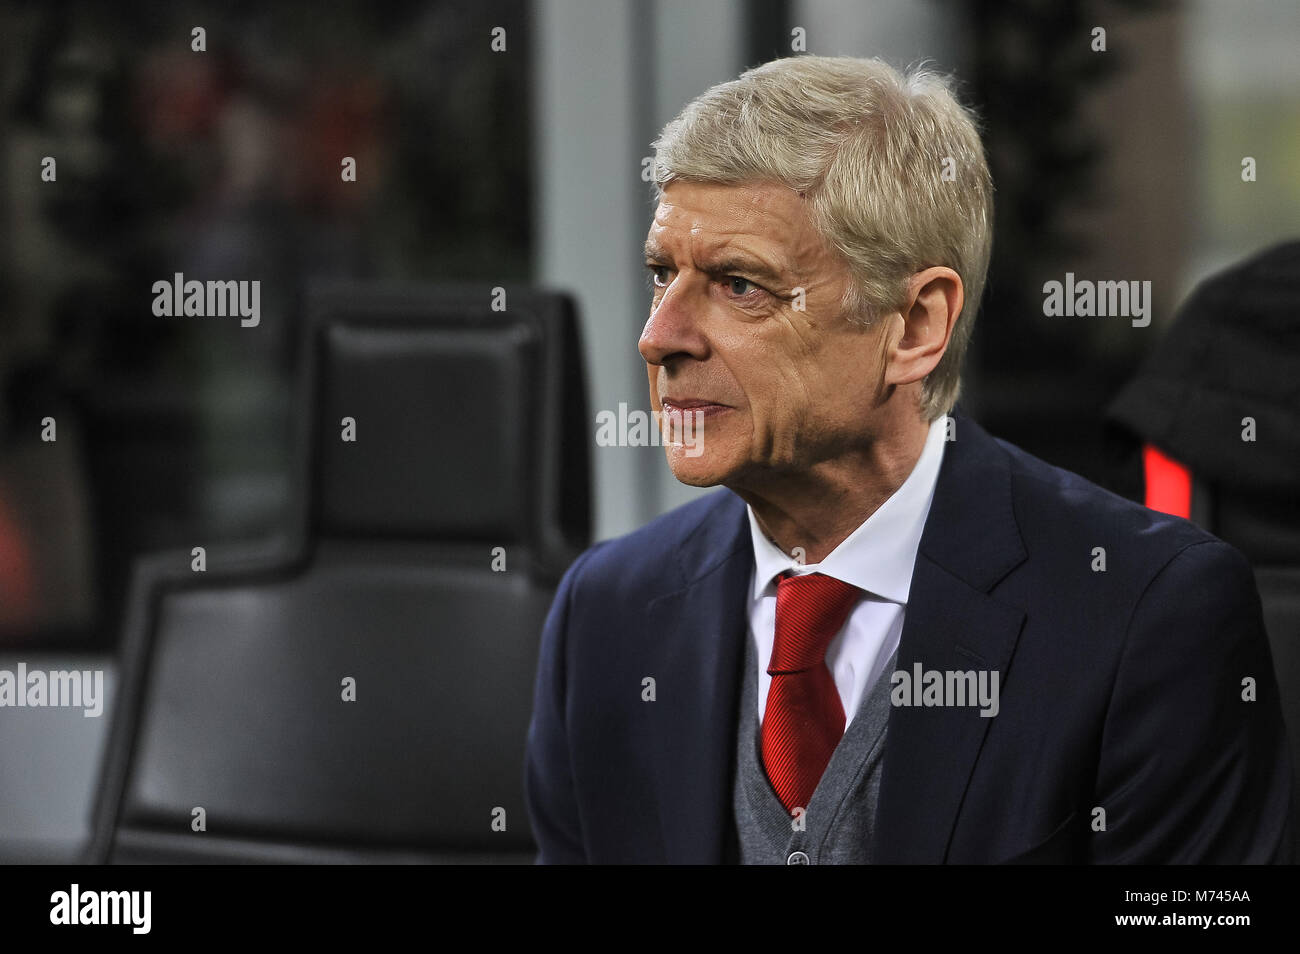 Milan, Italy. 8th March, 2018. Arsene Wenger, head coach of Arsenal FC, during the match UEFA Europa League between Stock Photo